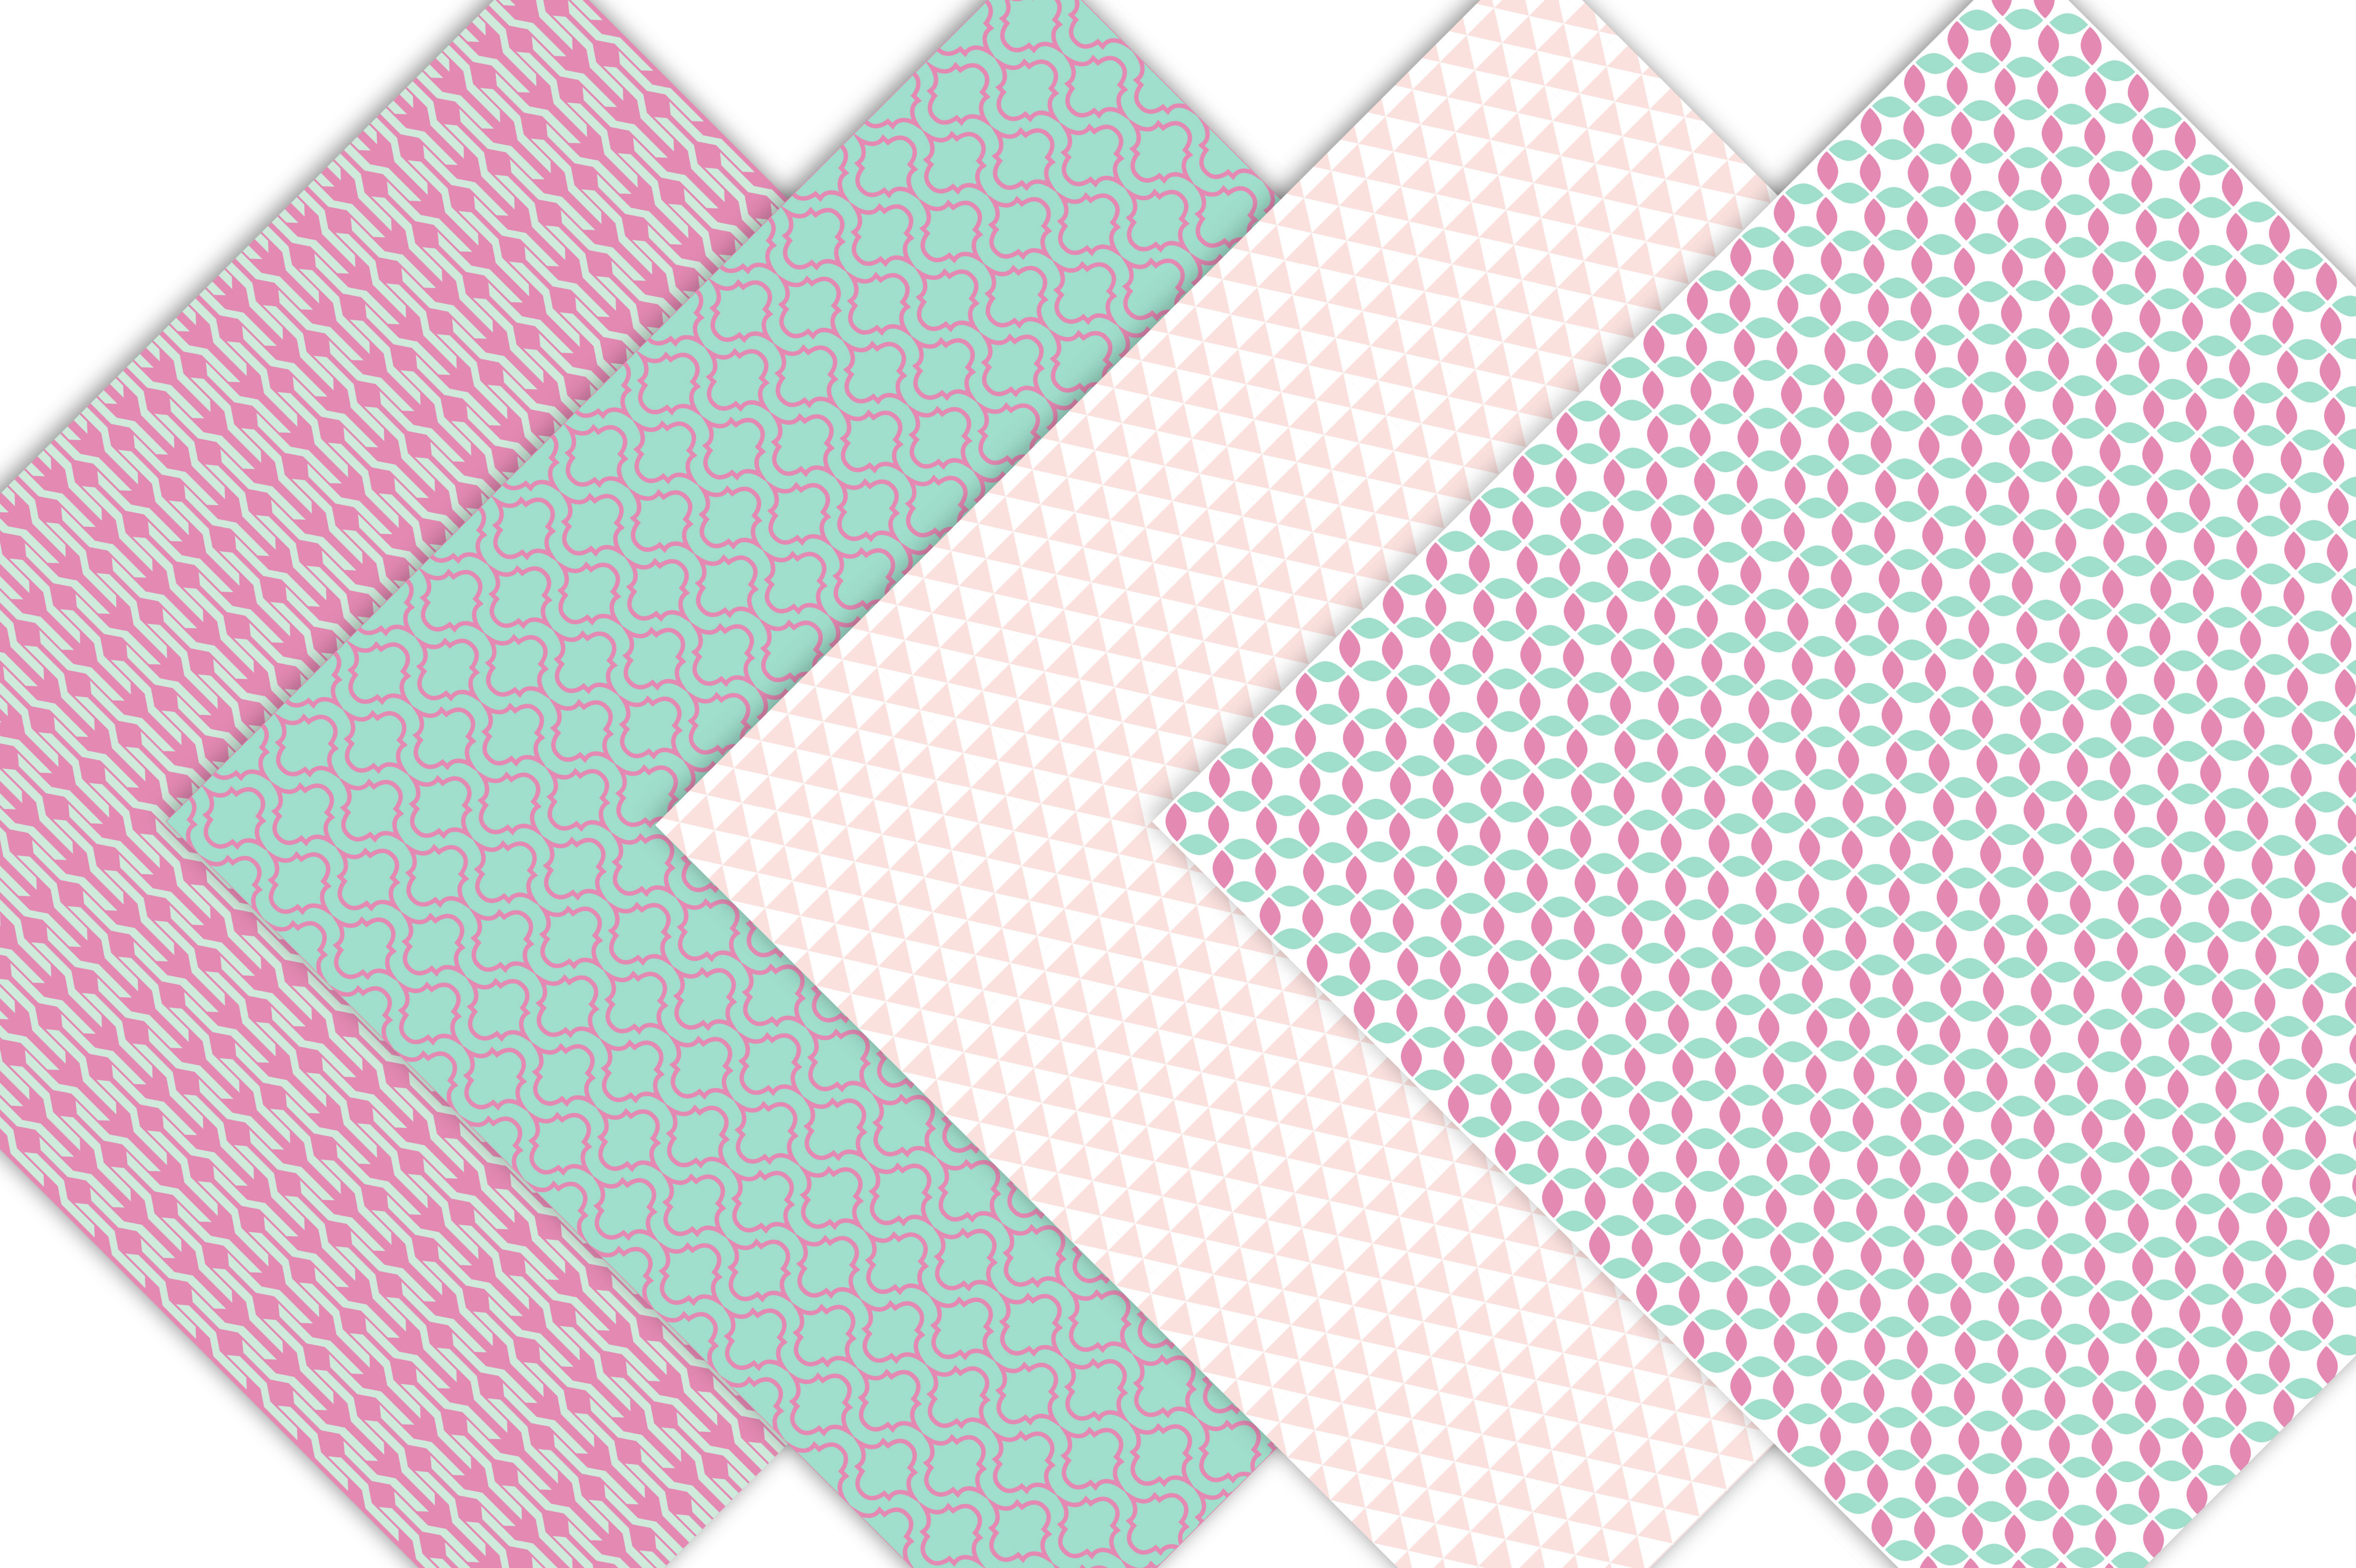 Geometric Digital Paper Patterns example image 3